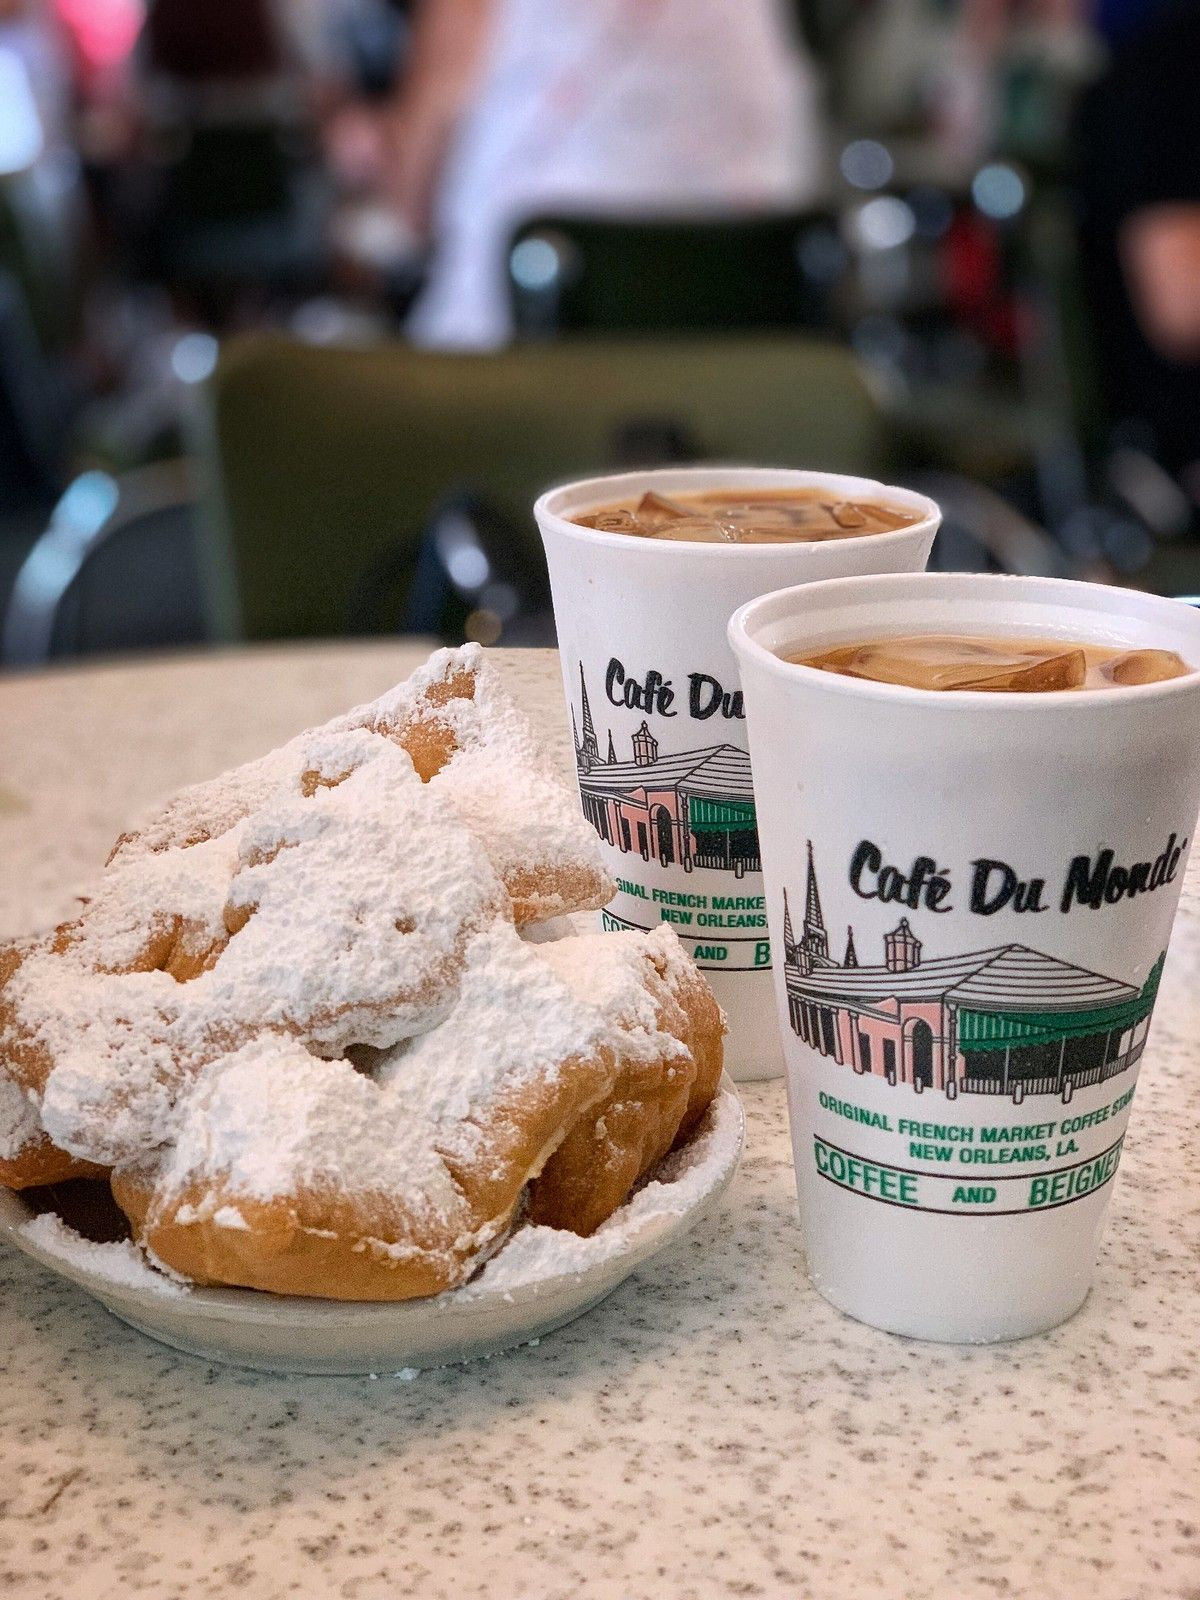 The lines are always long for this. It's like a do it once kinda deal. The beignets are good. Their coffee is supposed to be good.